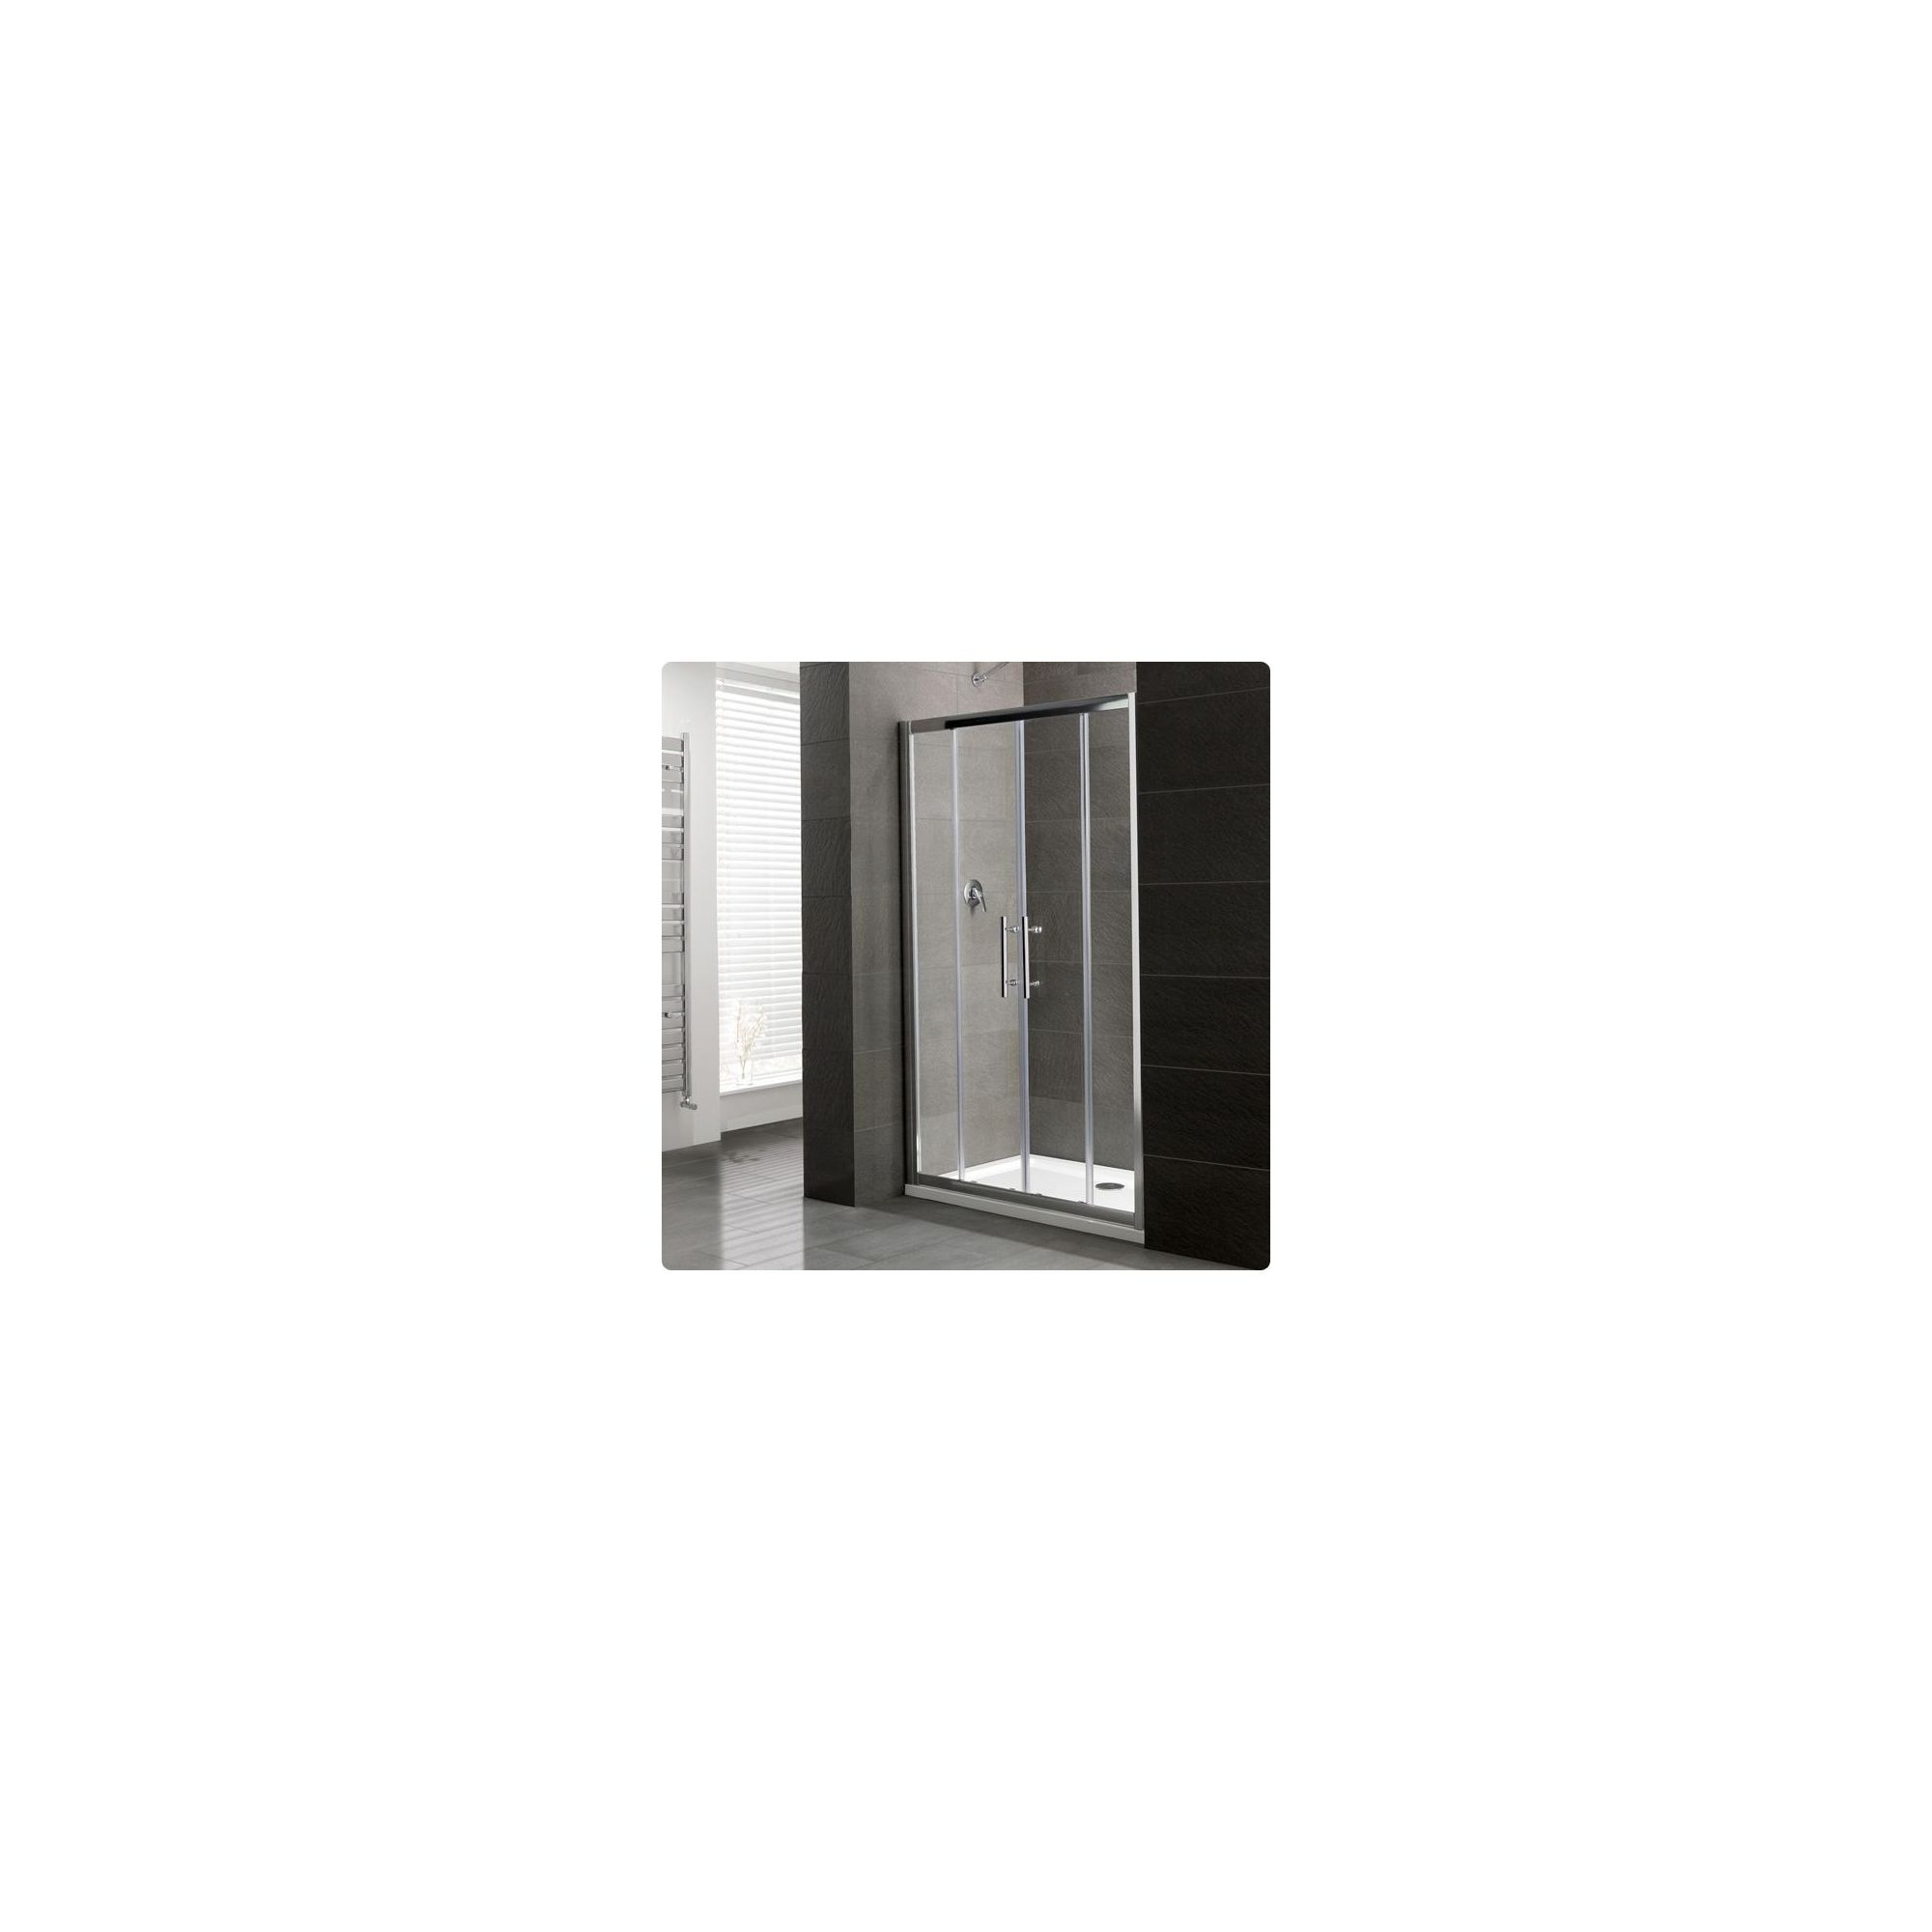 Duchy Select Silver Double Sliding Door Shower Enclosure, 1500mm x 800mm, Standard Tray, 6mm Glass at Tesco Direct